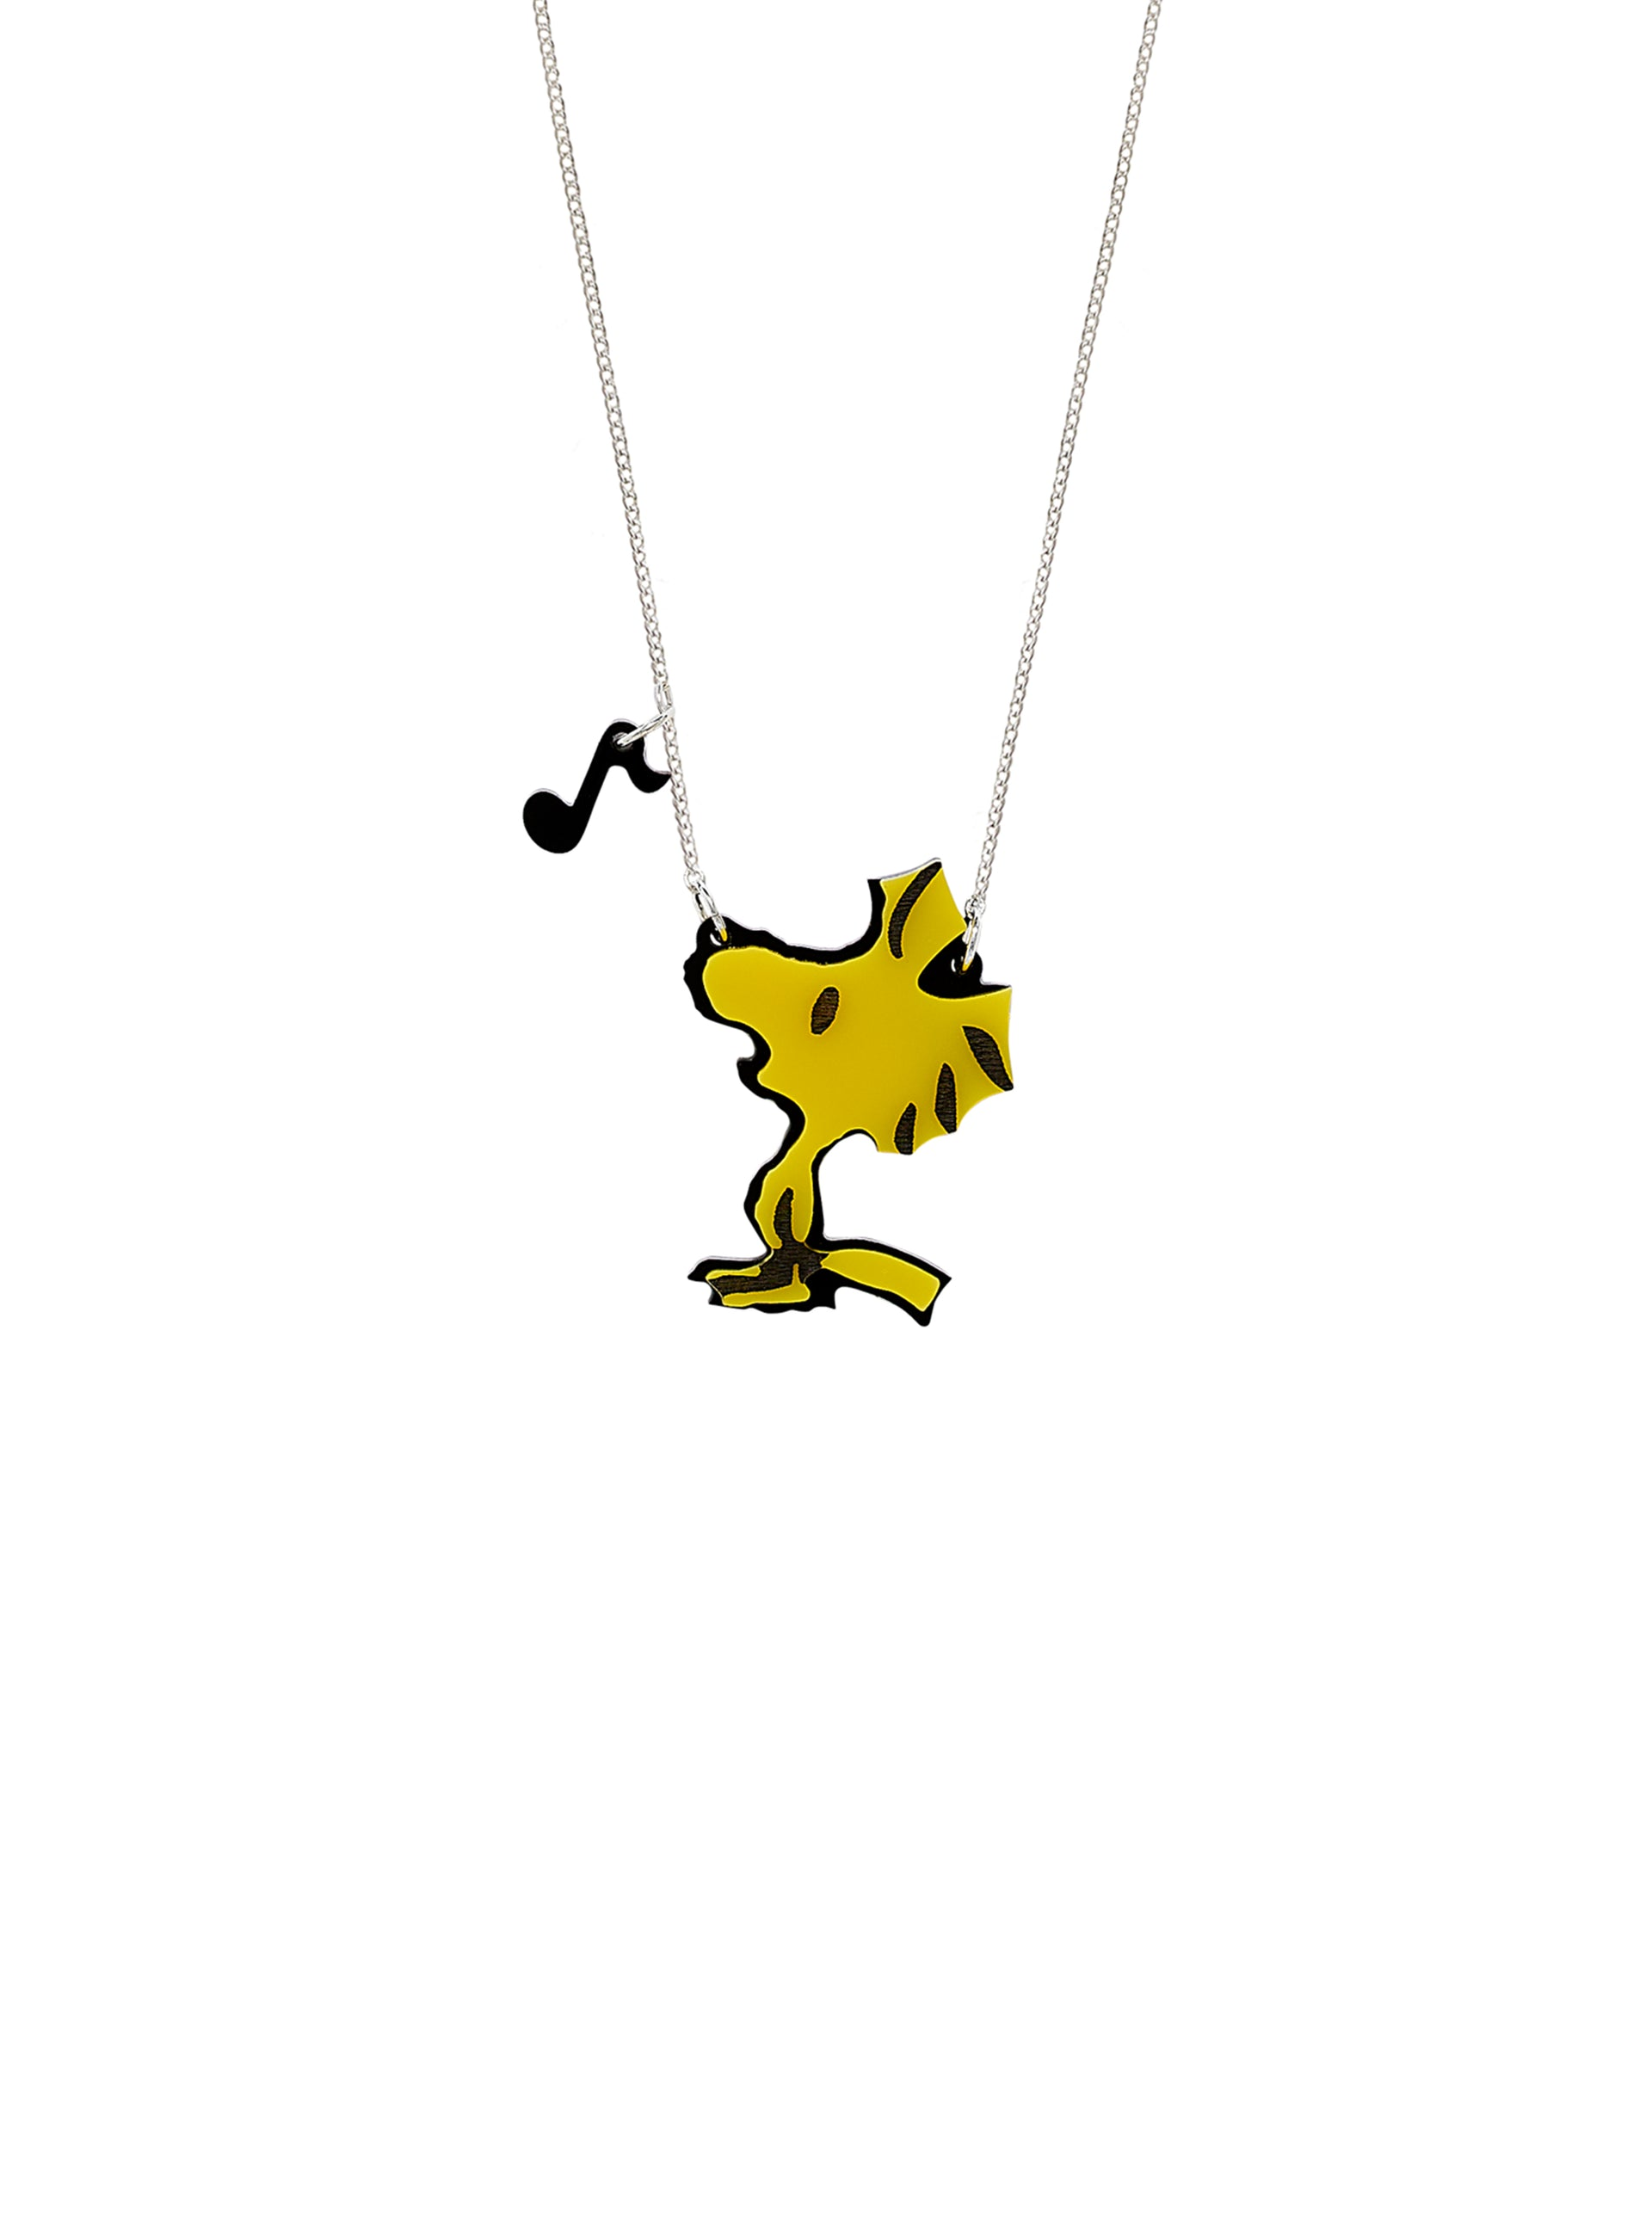 Woodstock-Whistling-Necklace